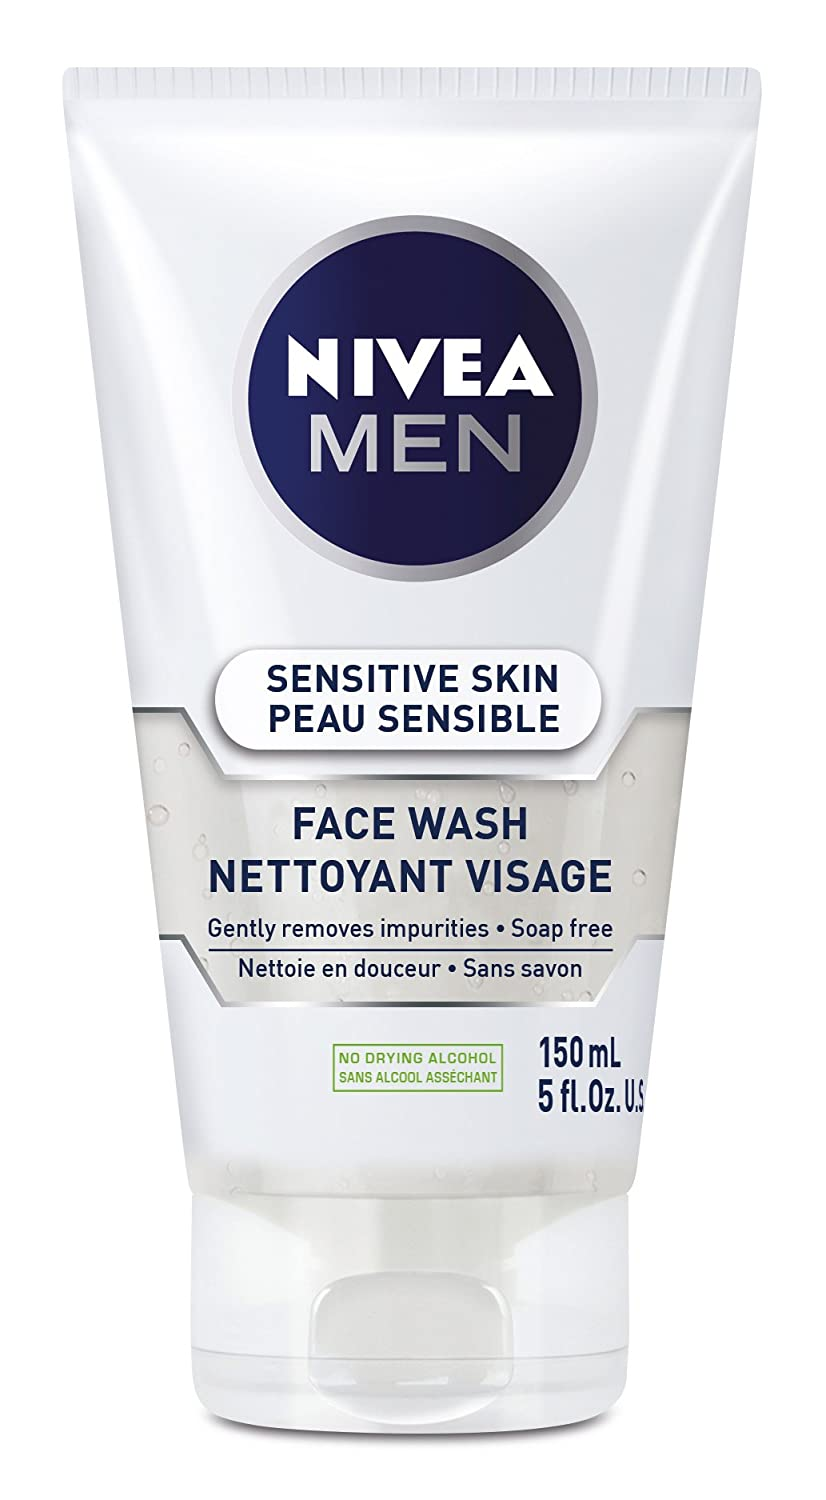 NIVEA MEN Sensitive Skin Face Wash, 150 mL 056594888173